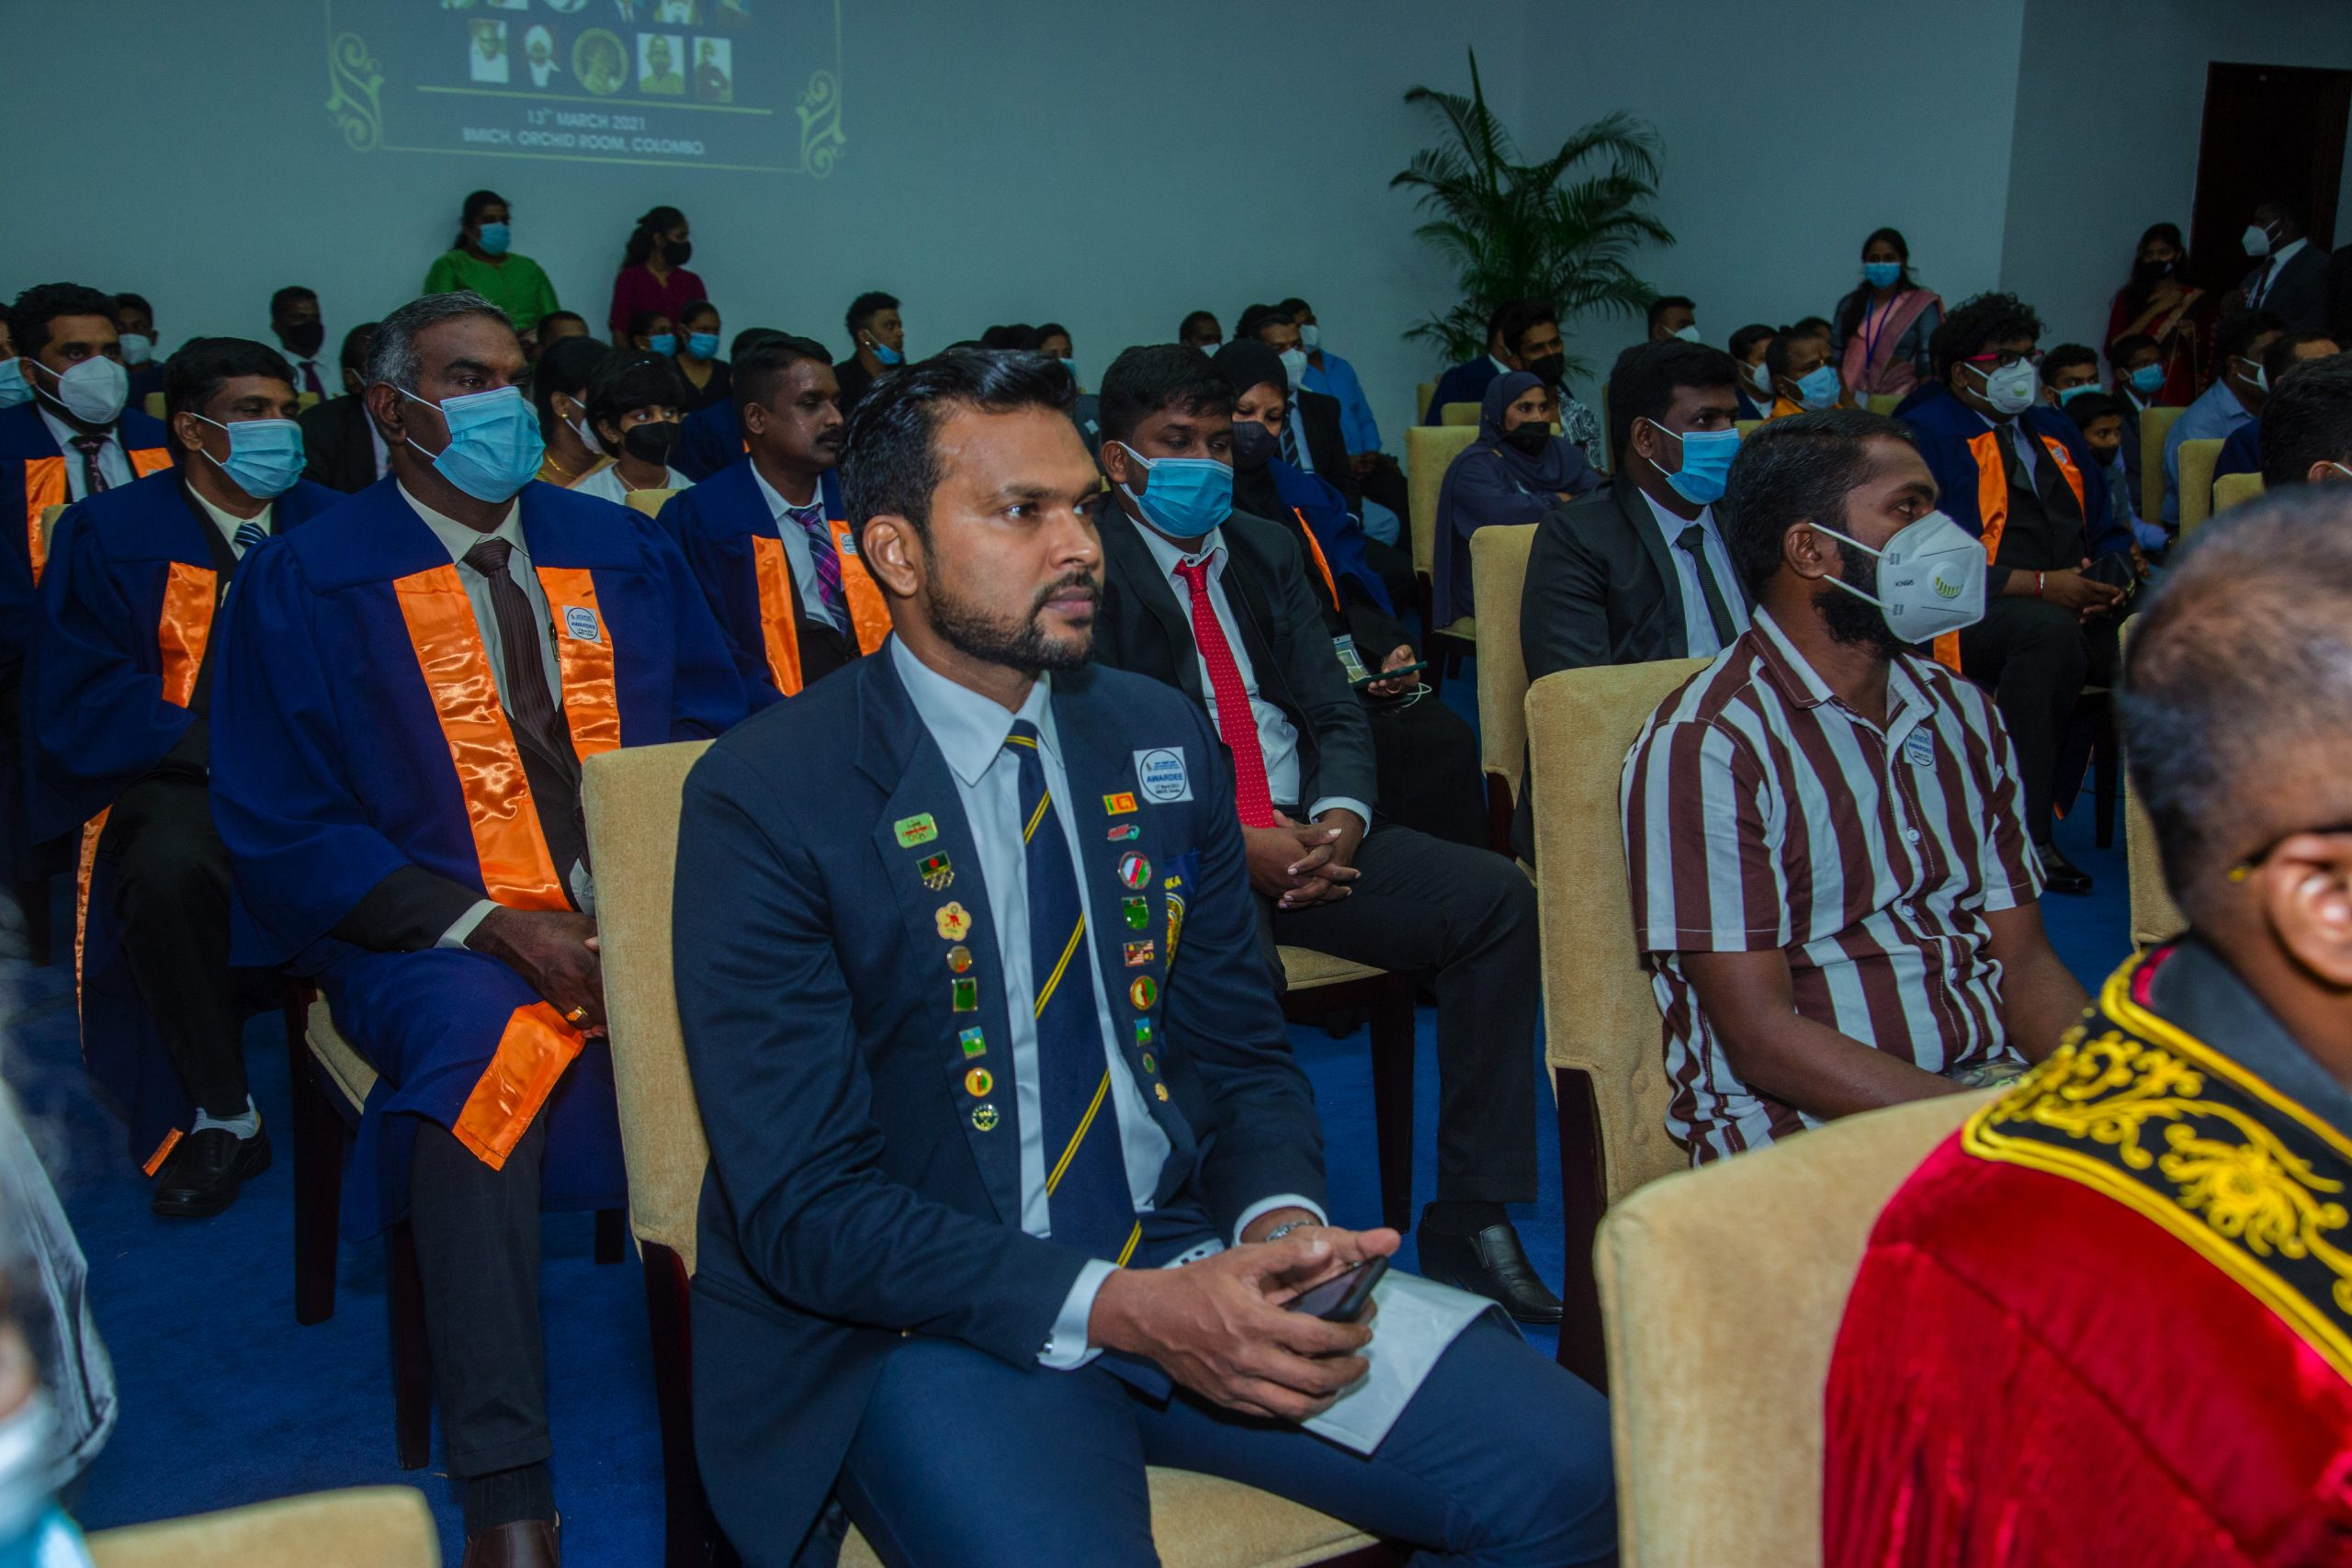 Great Leaders Awards 2020 (10)